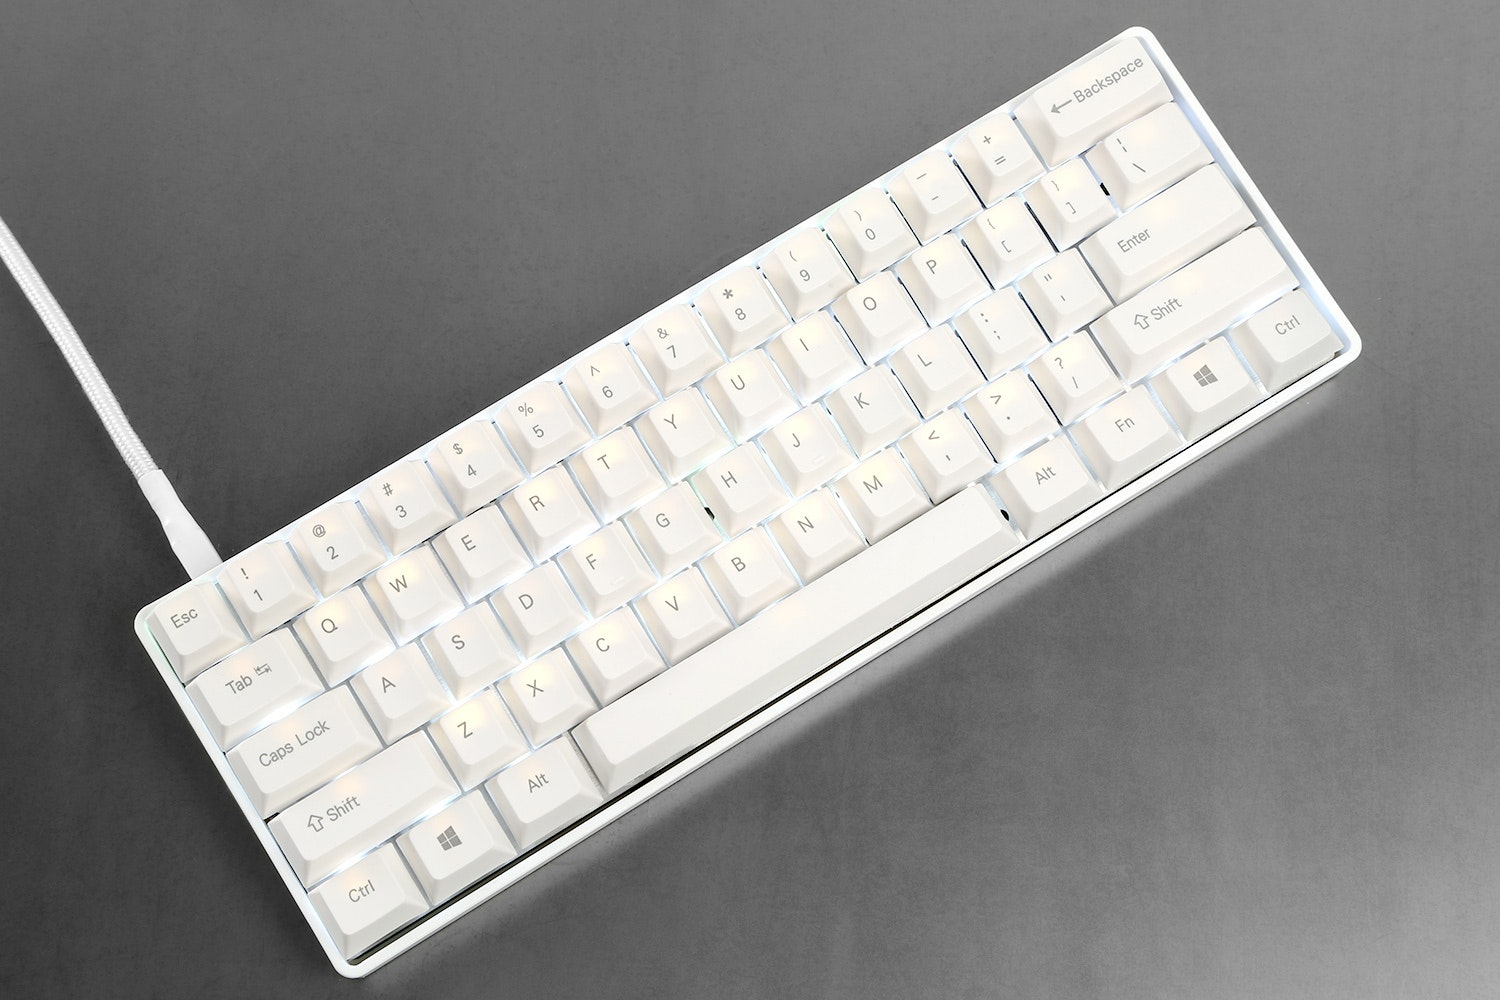 PBT White Top Printed - Cherry Profile